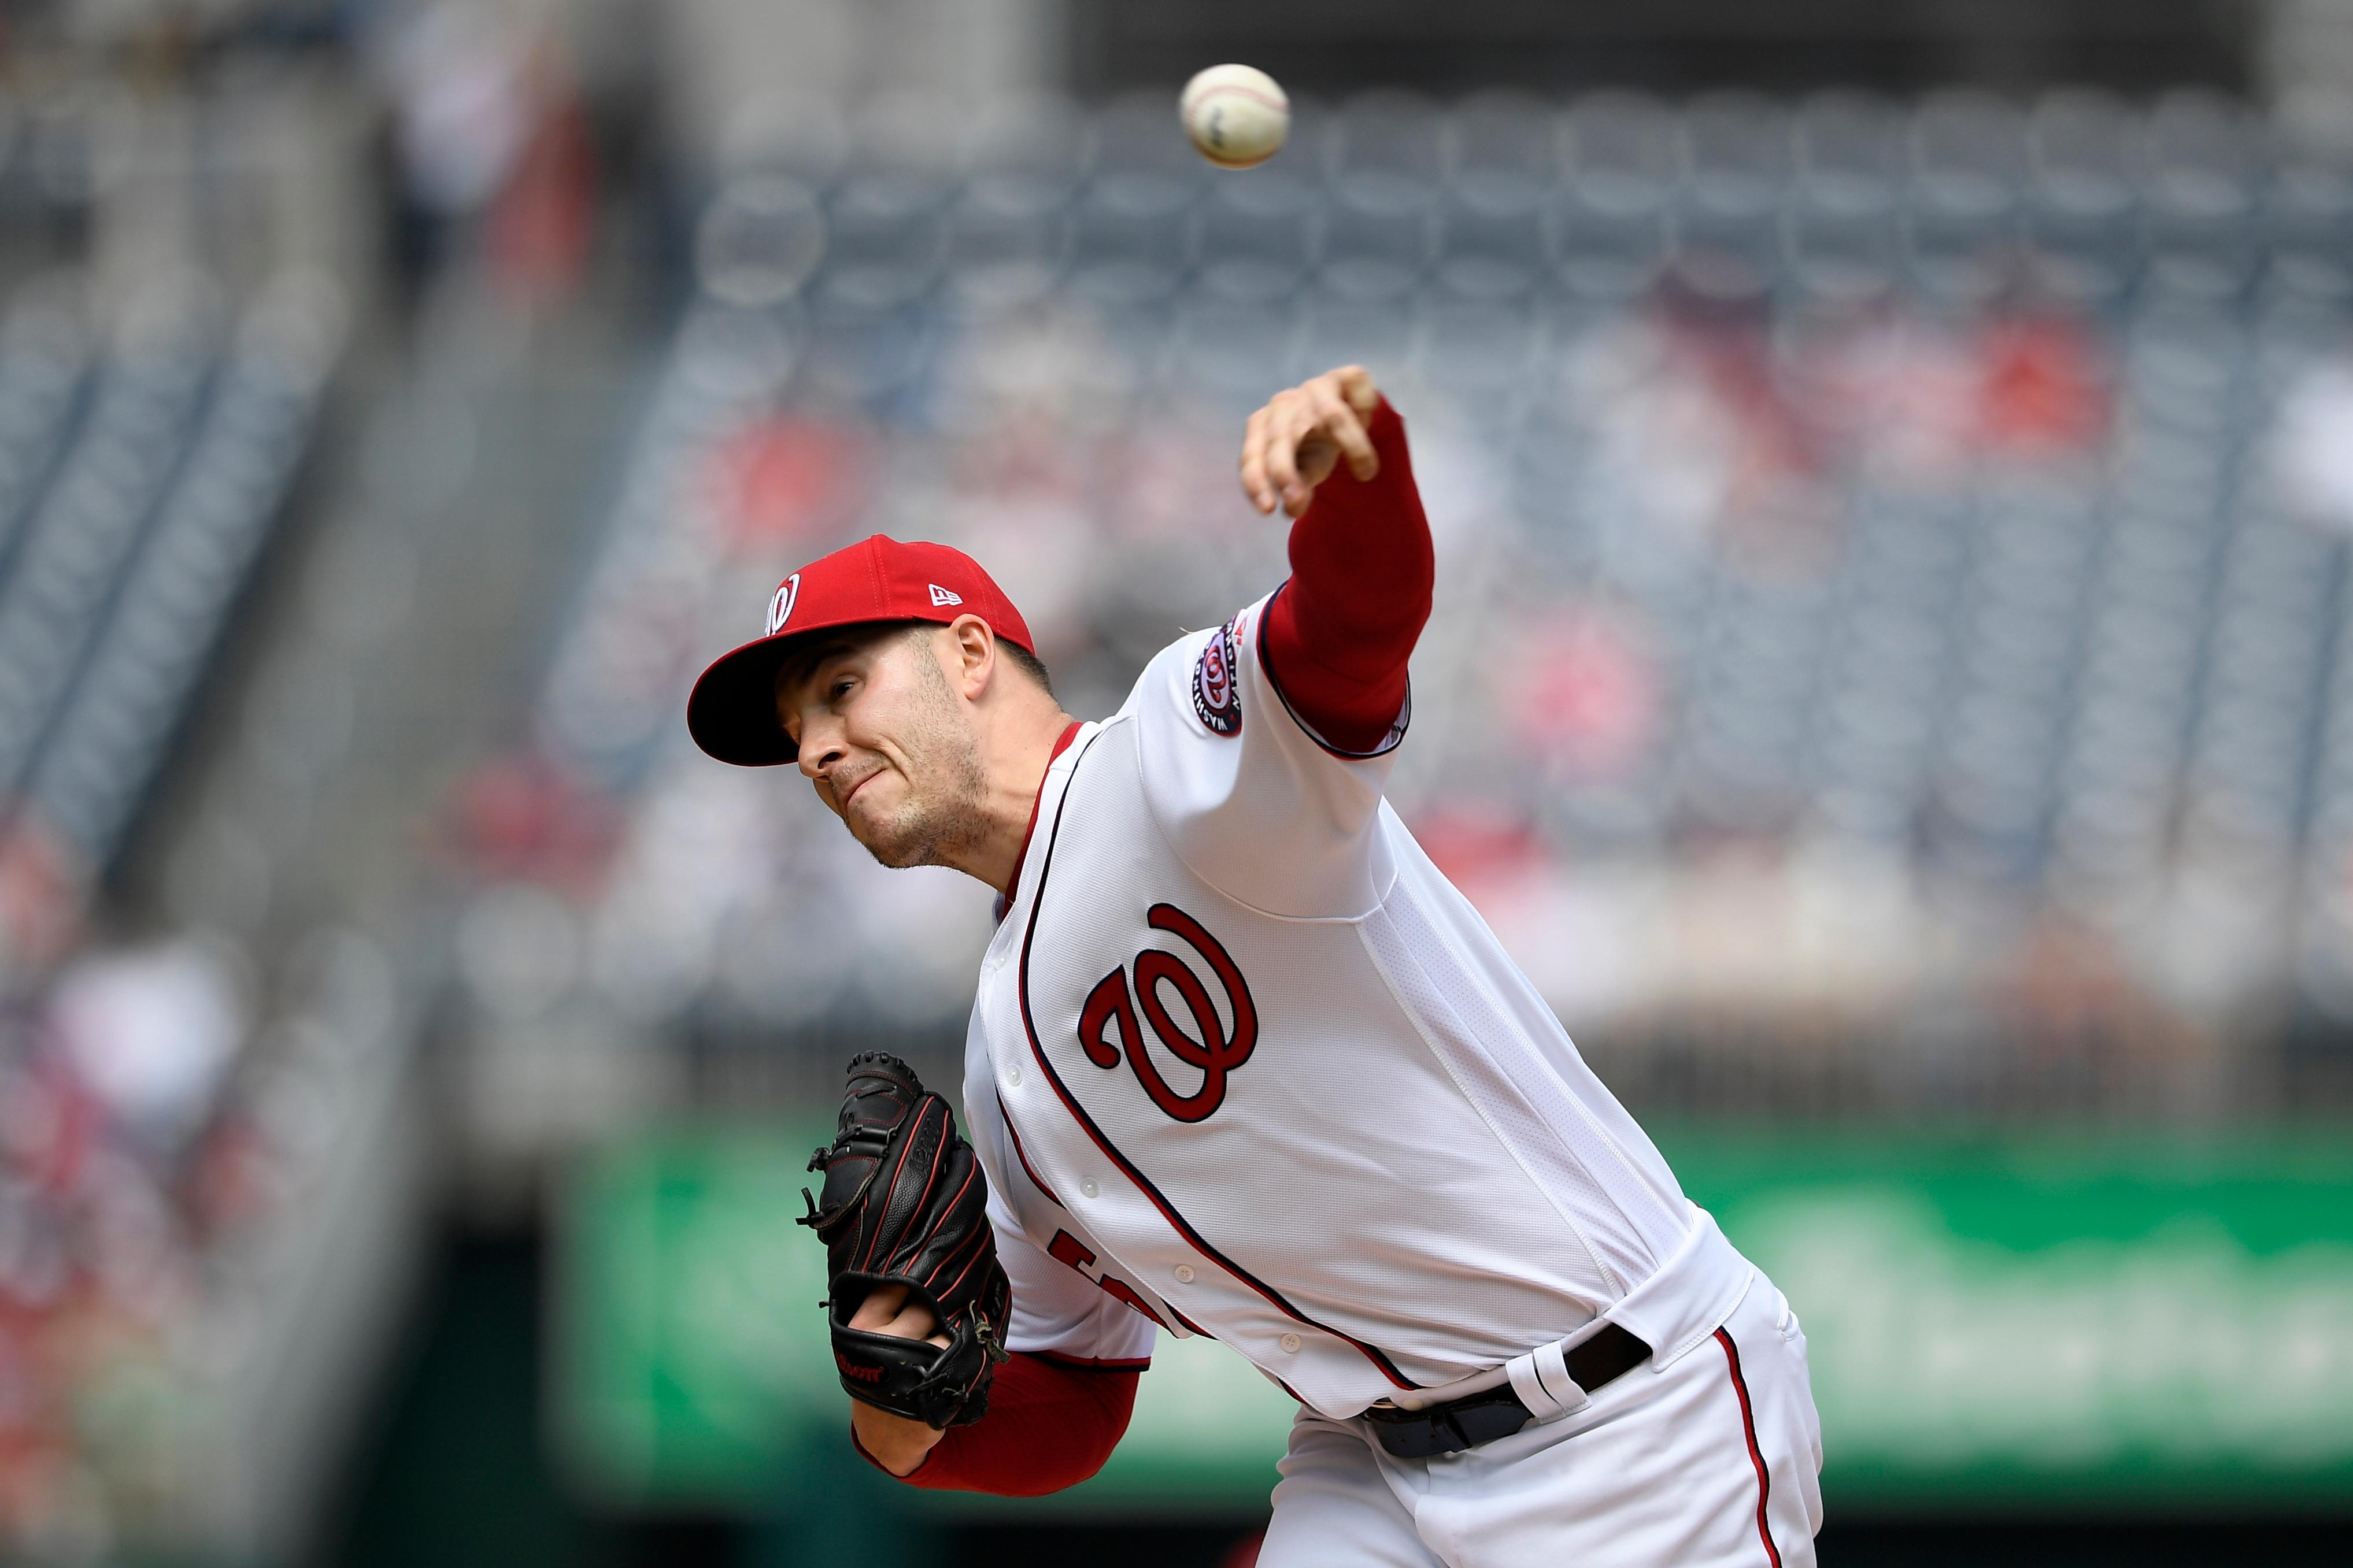 Washington Nationals starting pitcher Patrick Corbin delivers a pitch during the first inning of a baseball game against the San Francisco Giants, Thursday, April 18, 2019, in Washington. (AP Photo/Nick Wass)